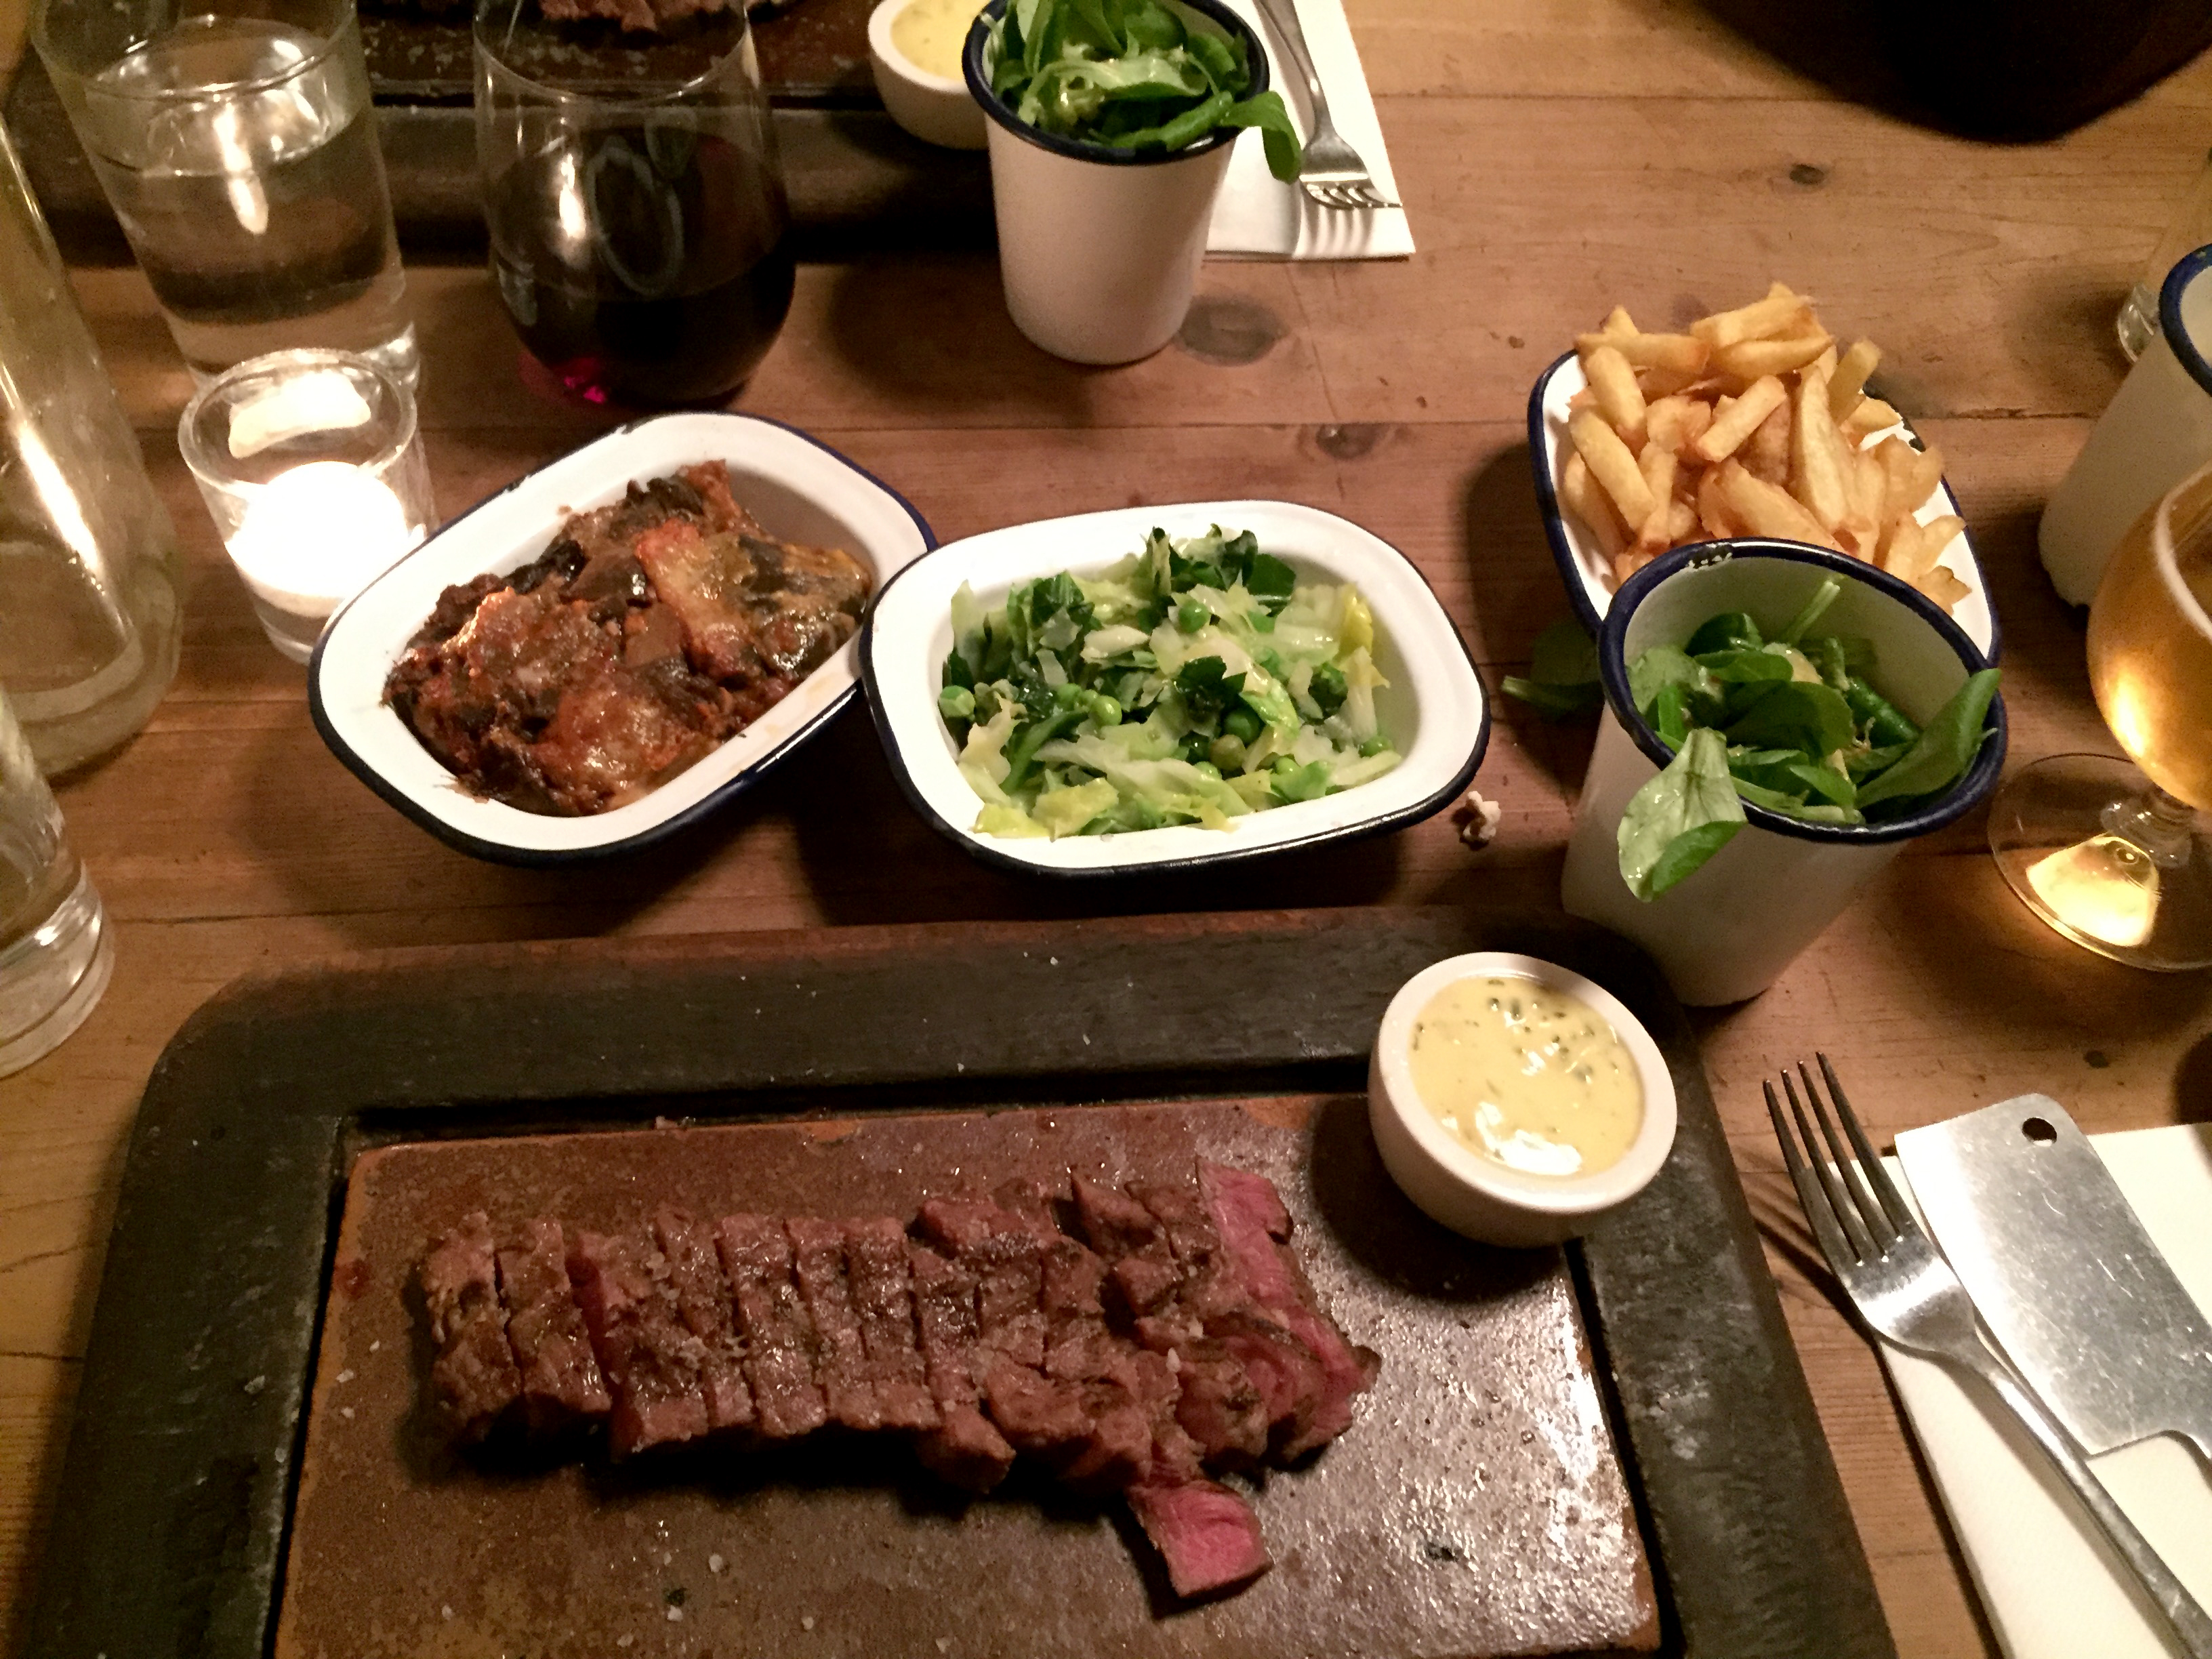 my steak and sides